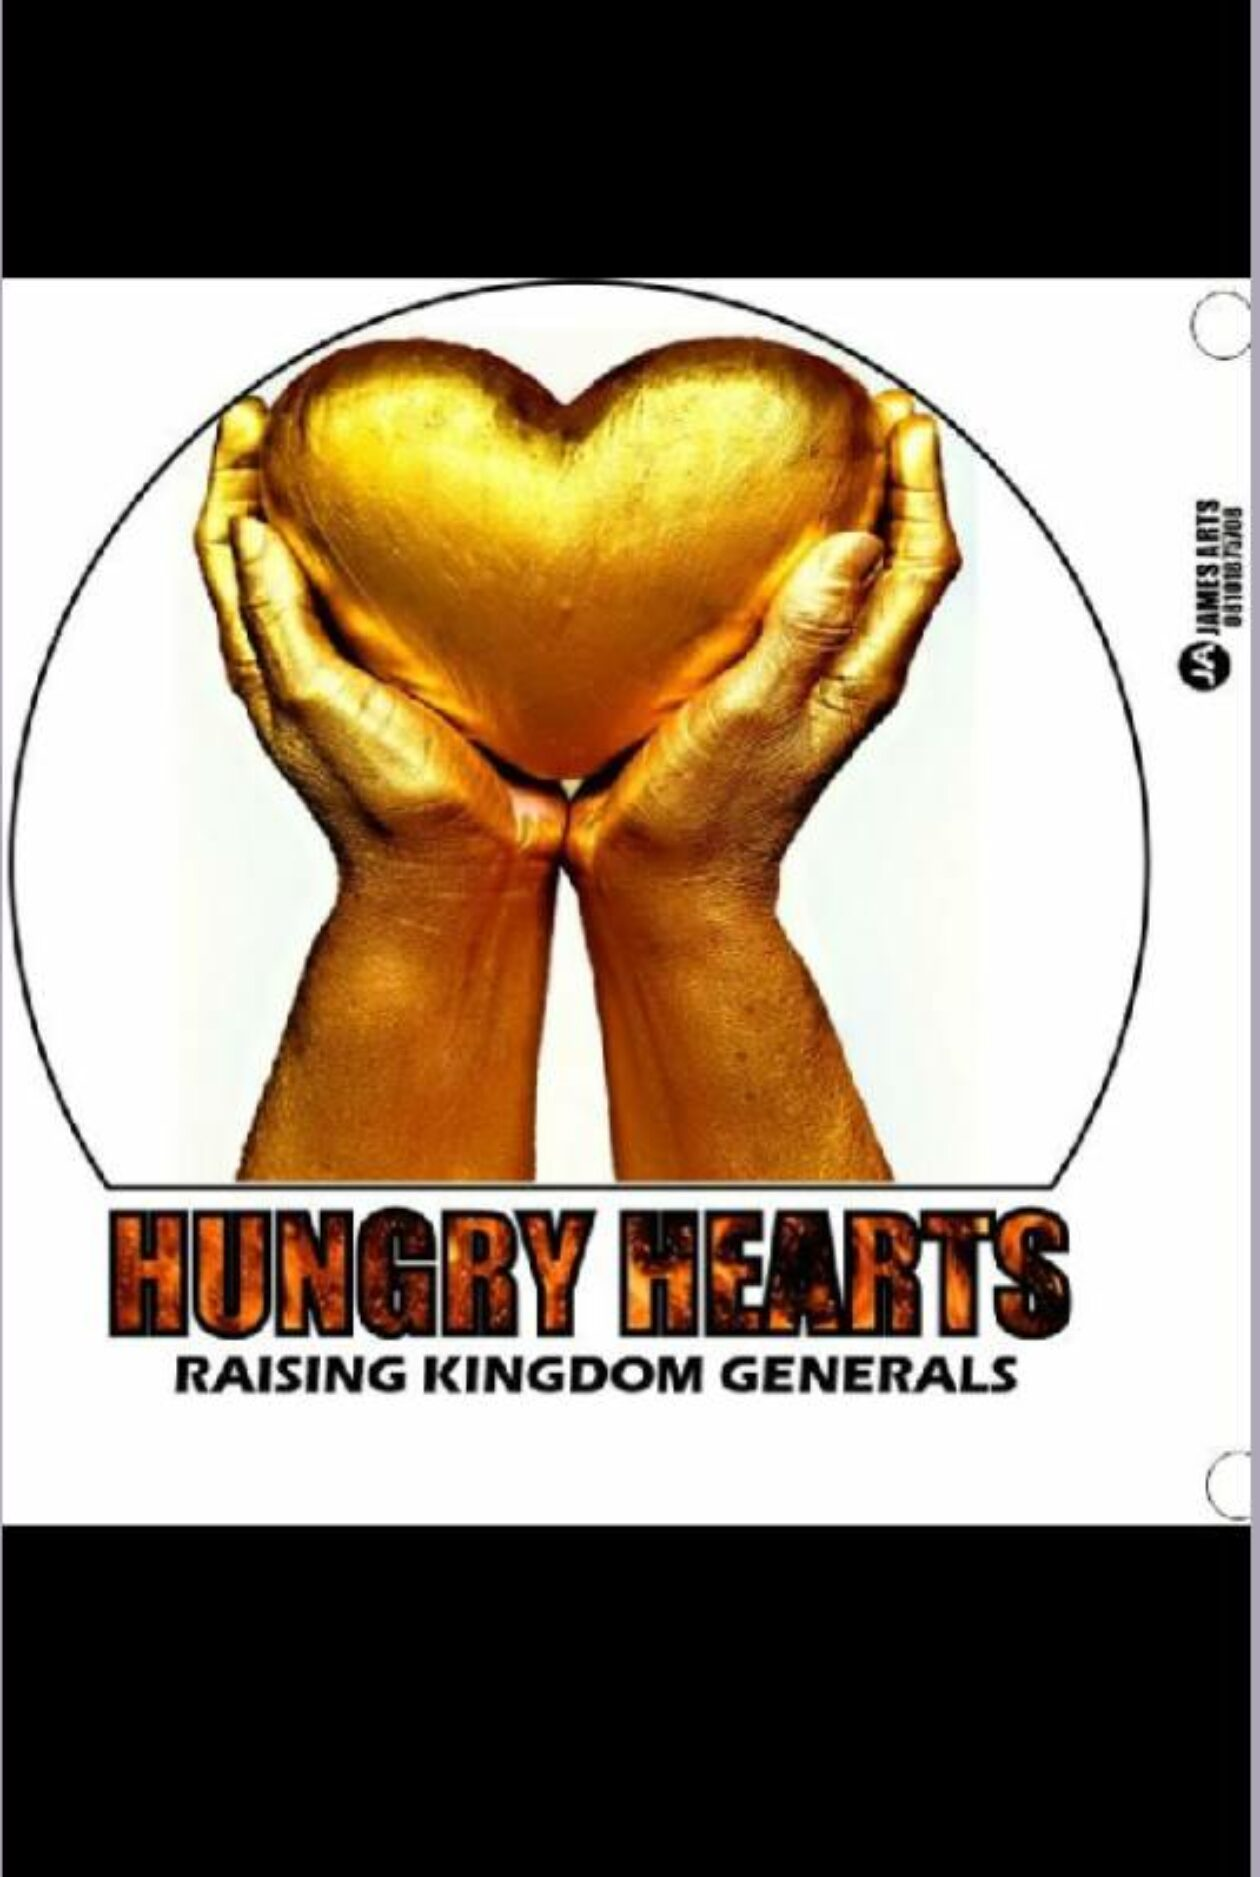 HUNGRY HEARTS REVIVAL MOVEMENT